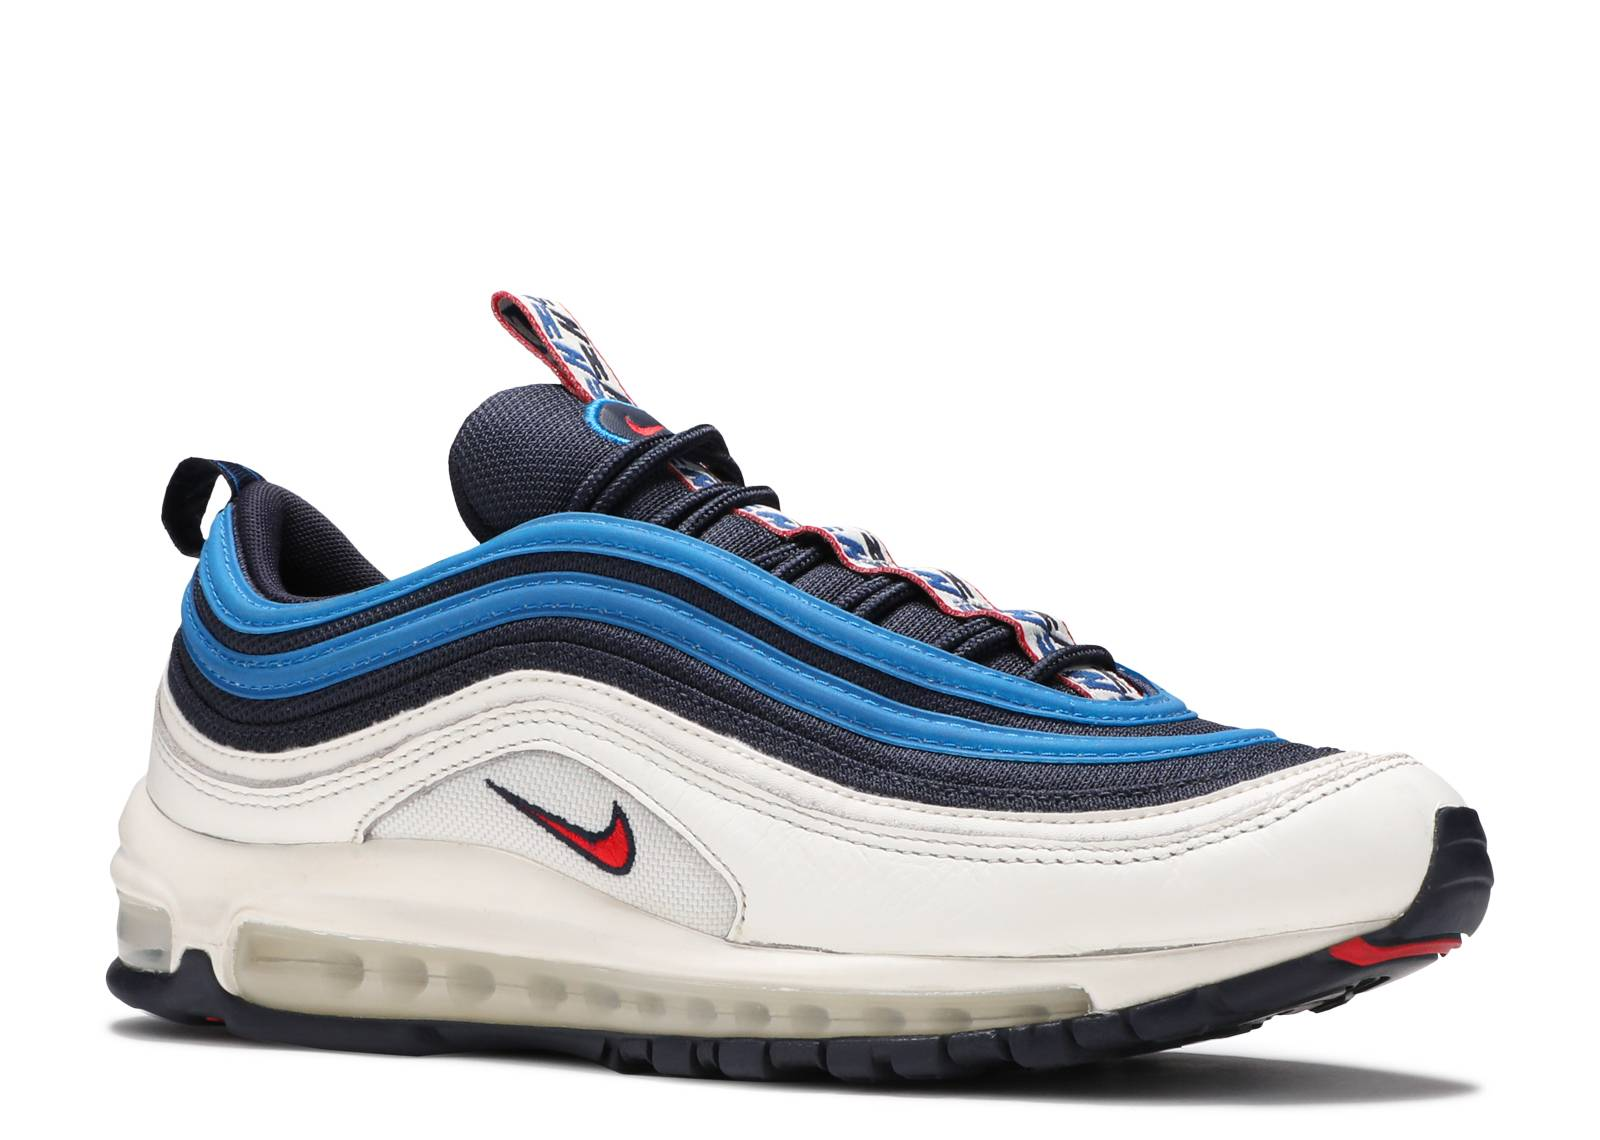 Nike Air Max 97 Blue Nebula Obsidian University